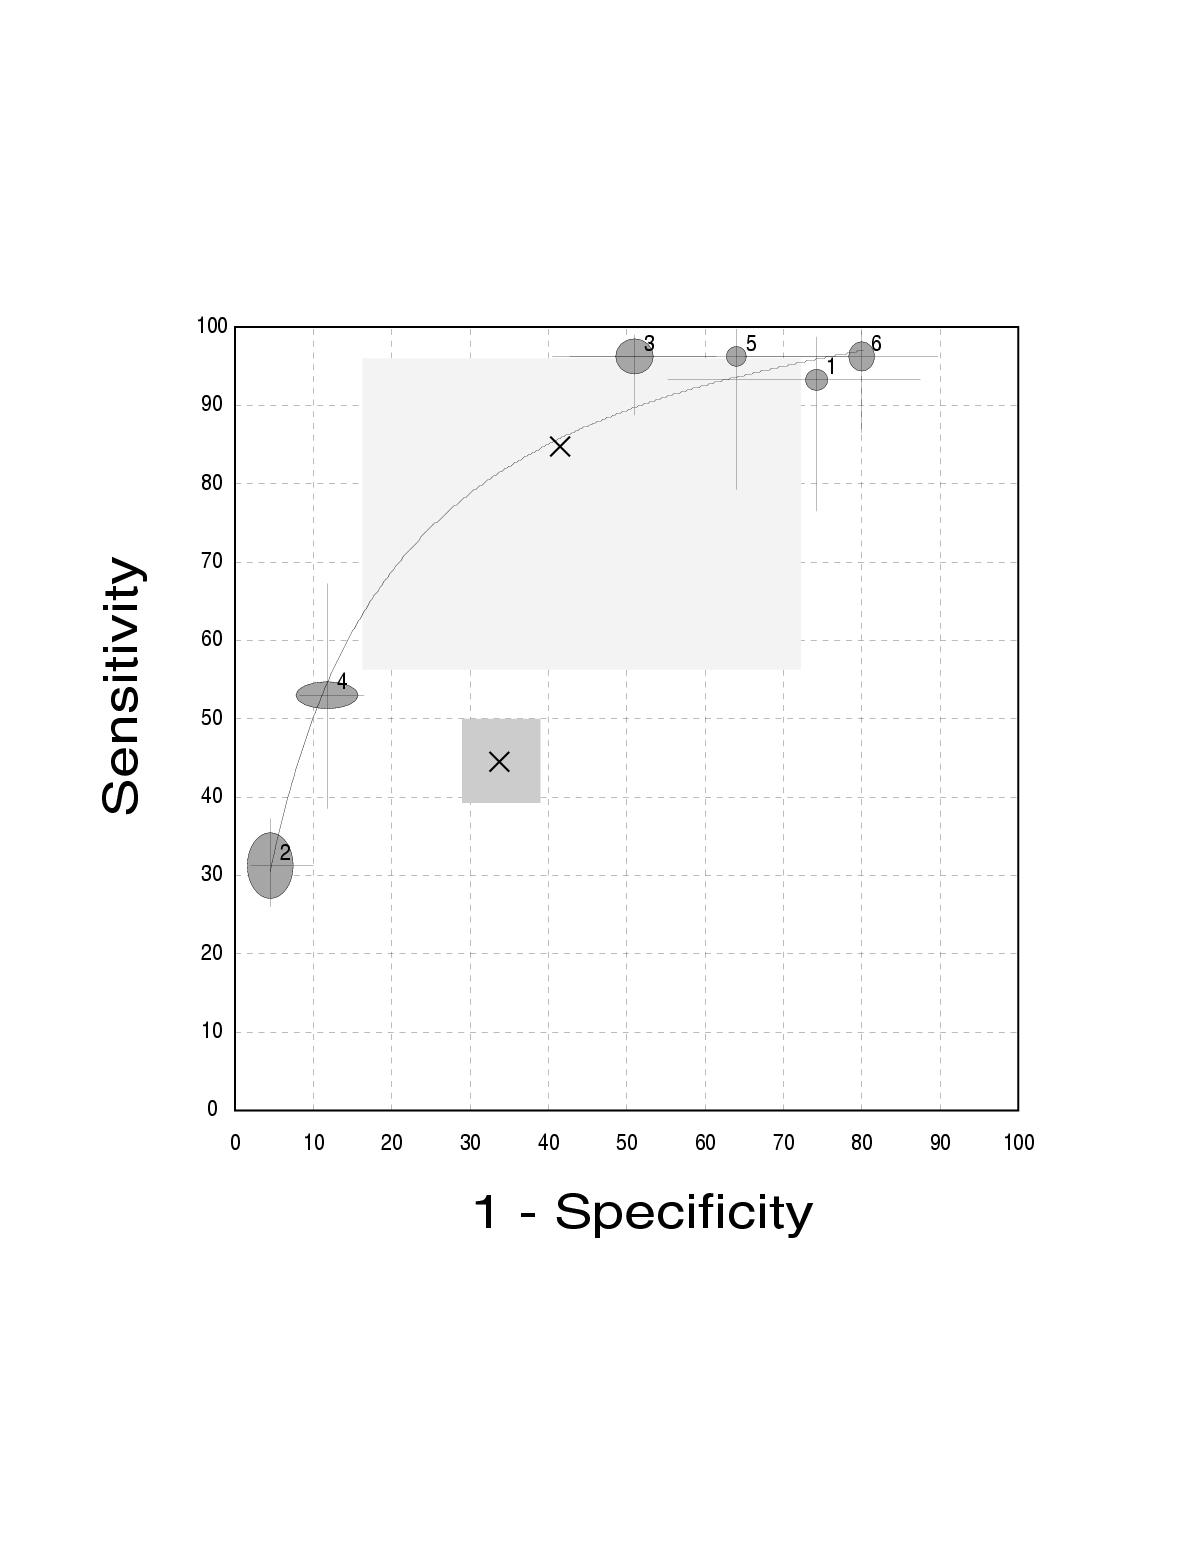 https://static-content.springer.com/image/art%3A10.1186%2F1472-6947-1-6/MediaObjects/12911_2001_Article_6_Fig3_HTML.jpg